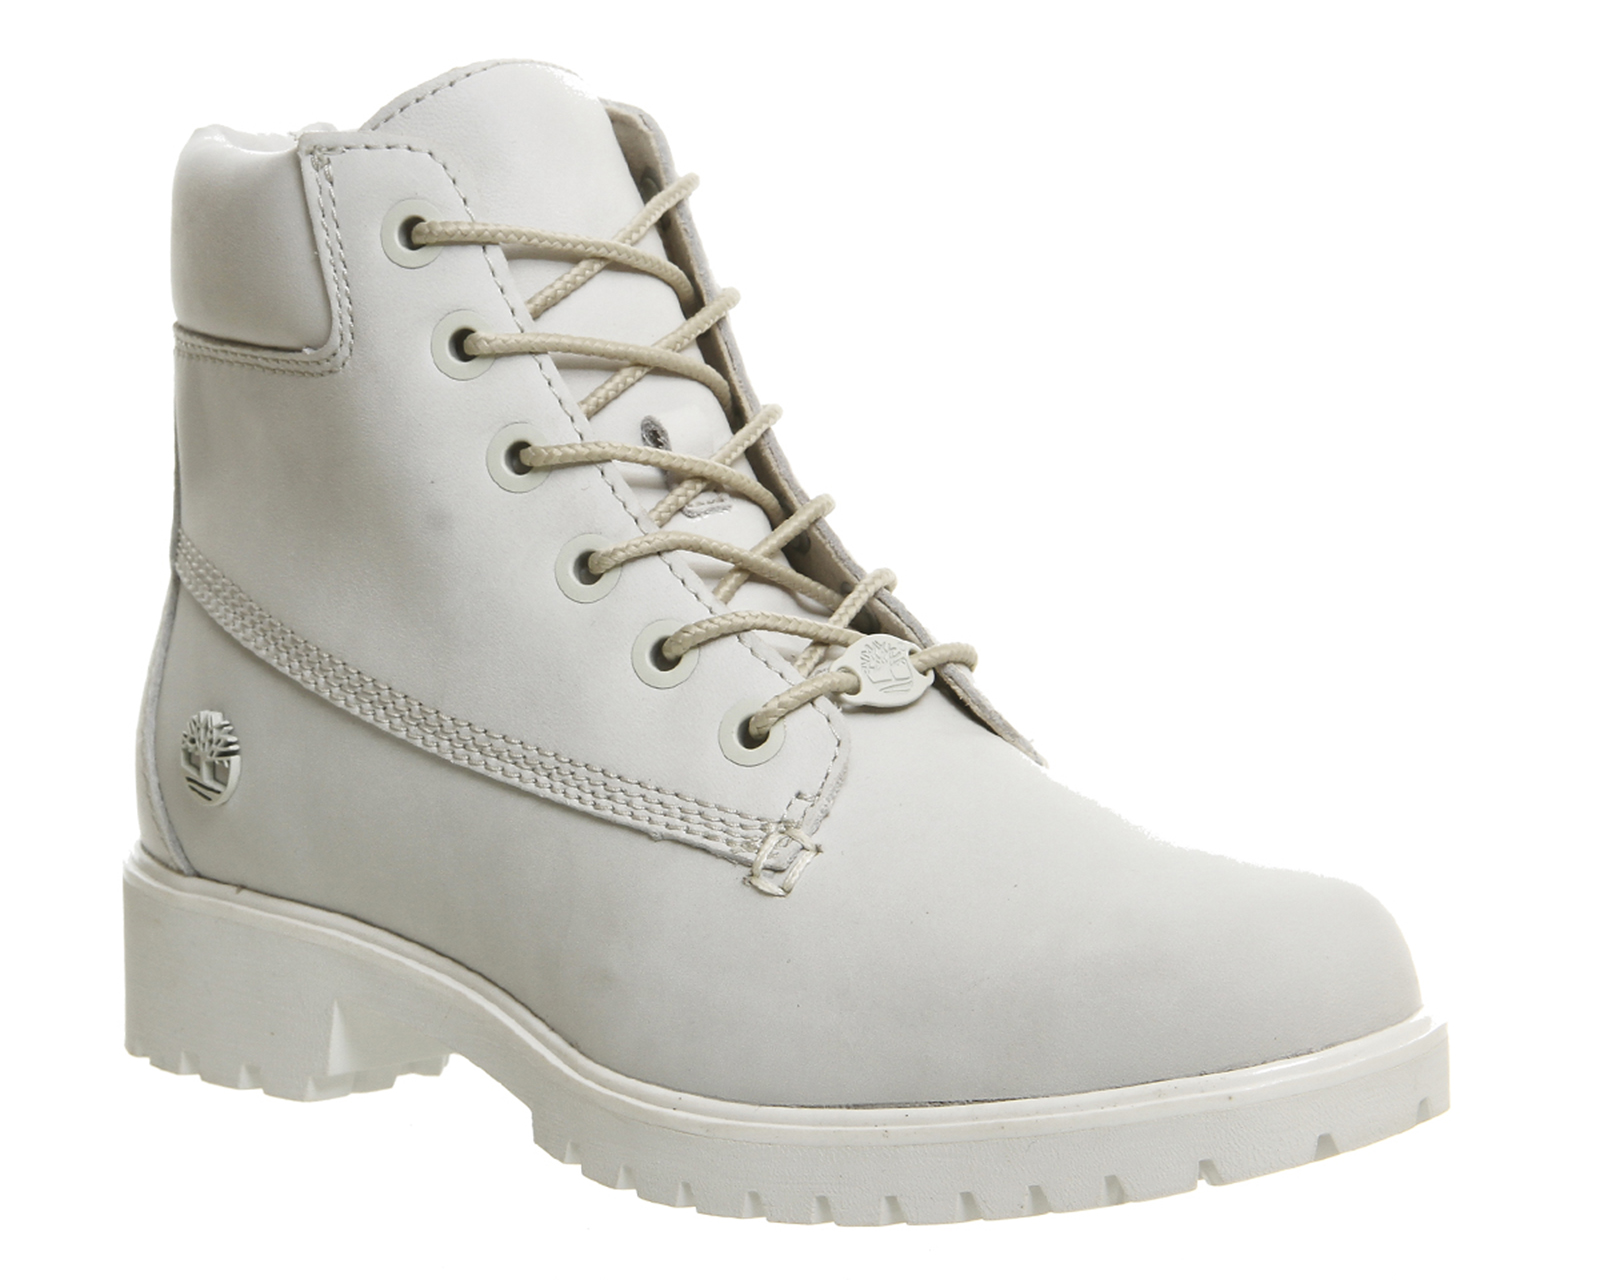 Unique Inspired By Harlem Renaissanceera Fashion, His Brogues Combine The Boot Brands Classic 6inch Silhouette With A